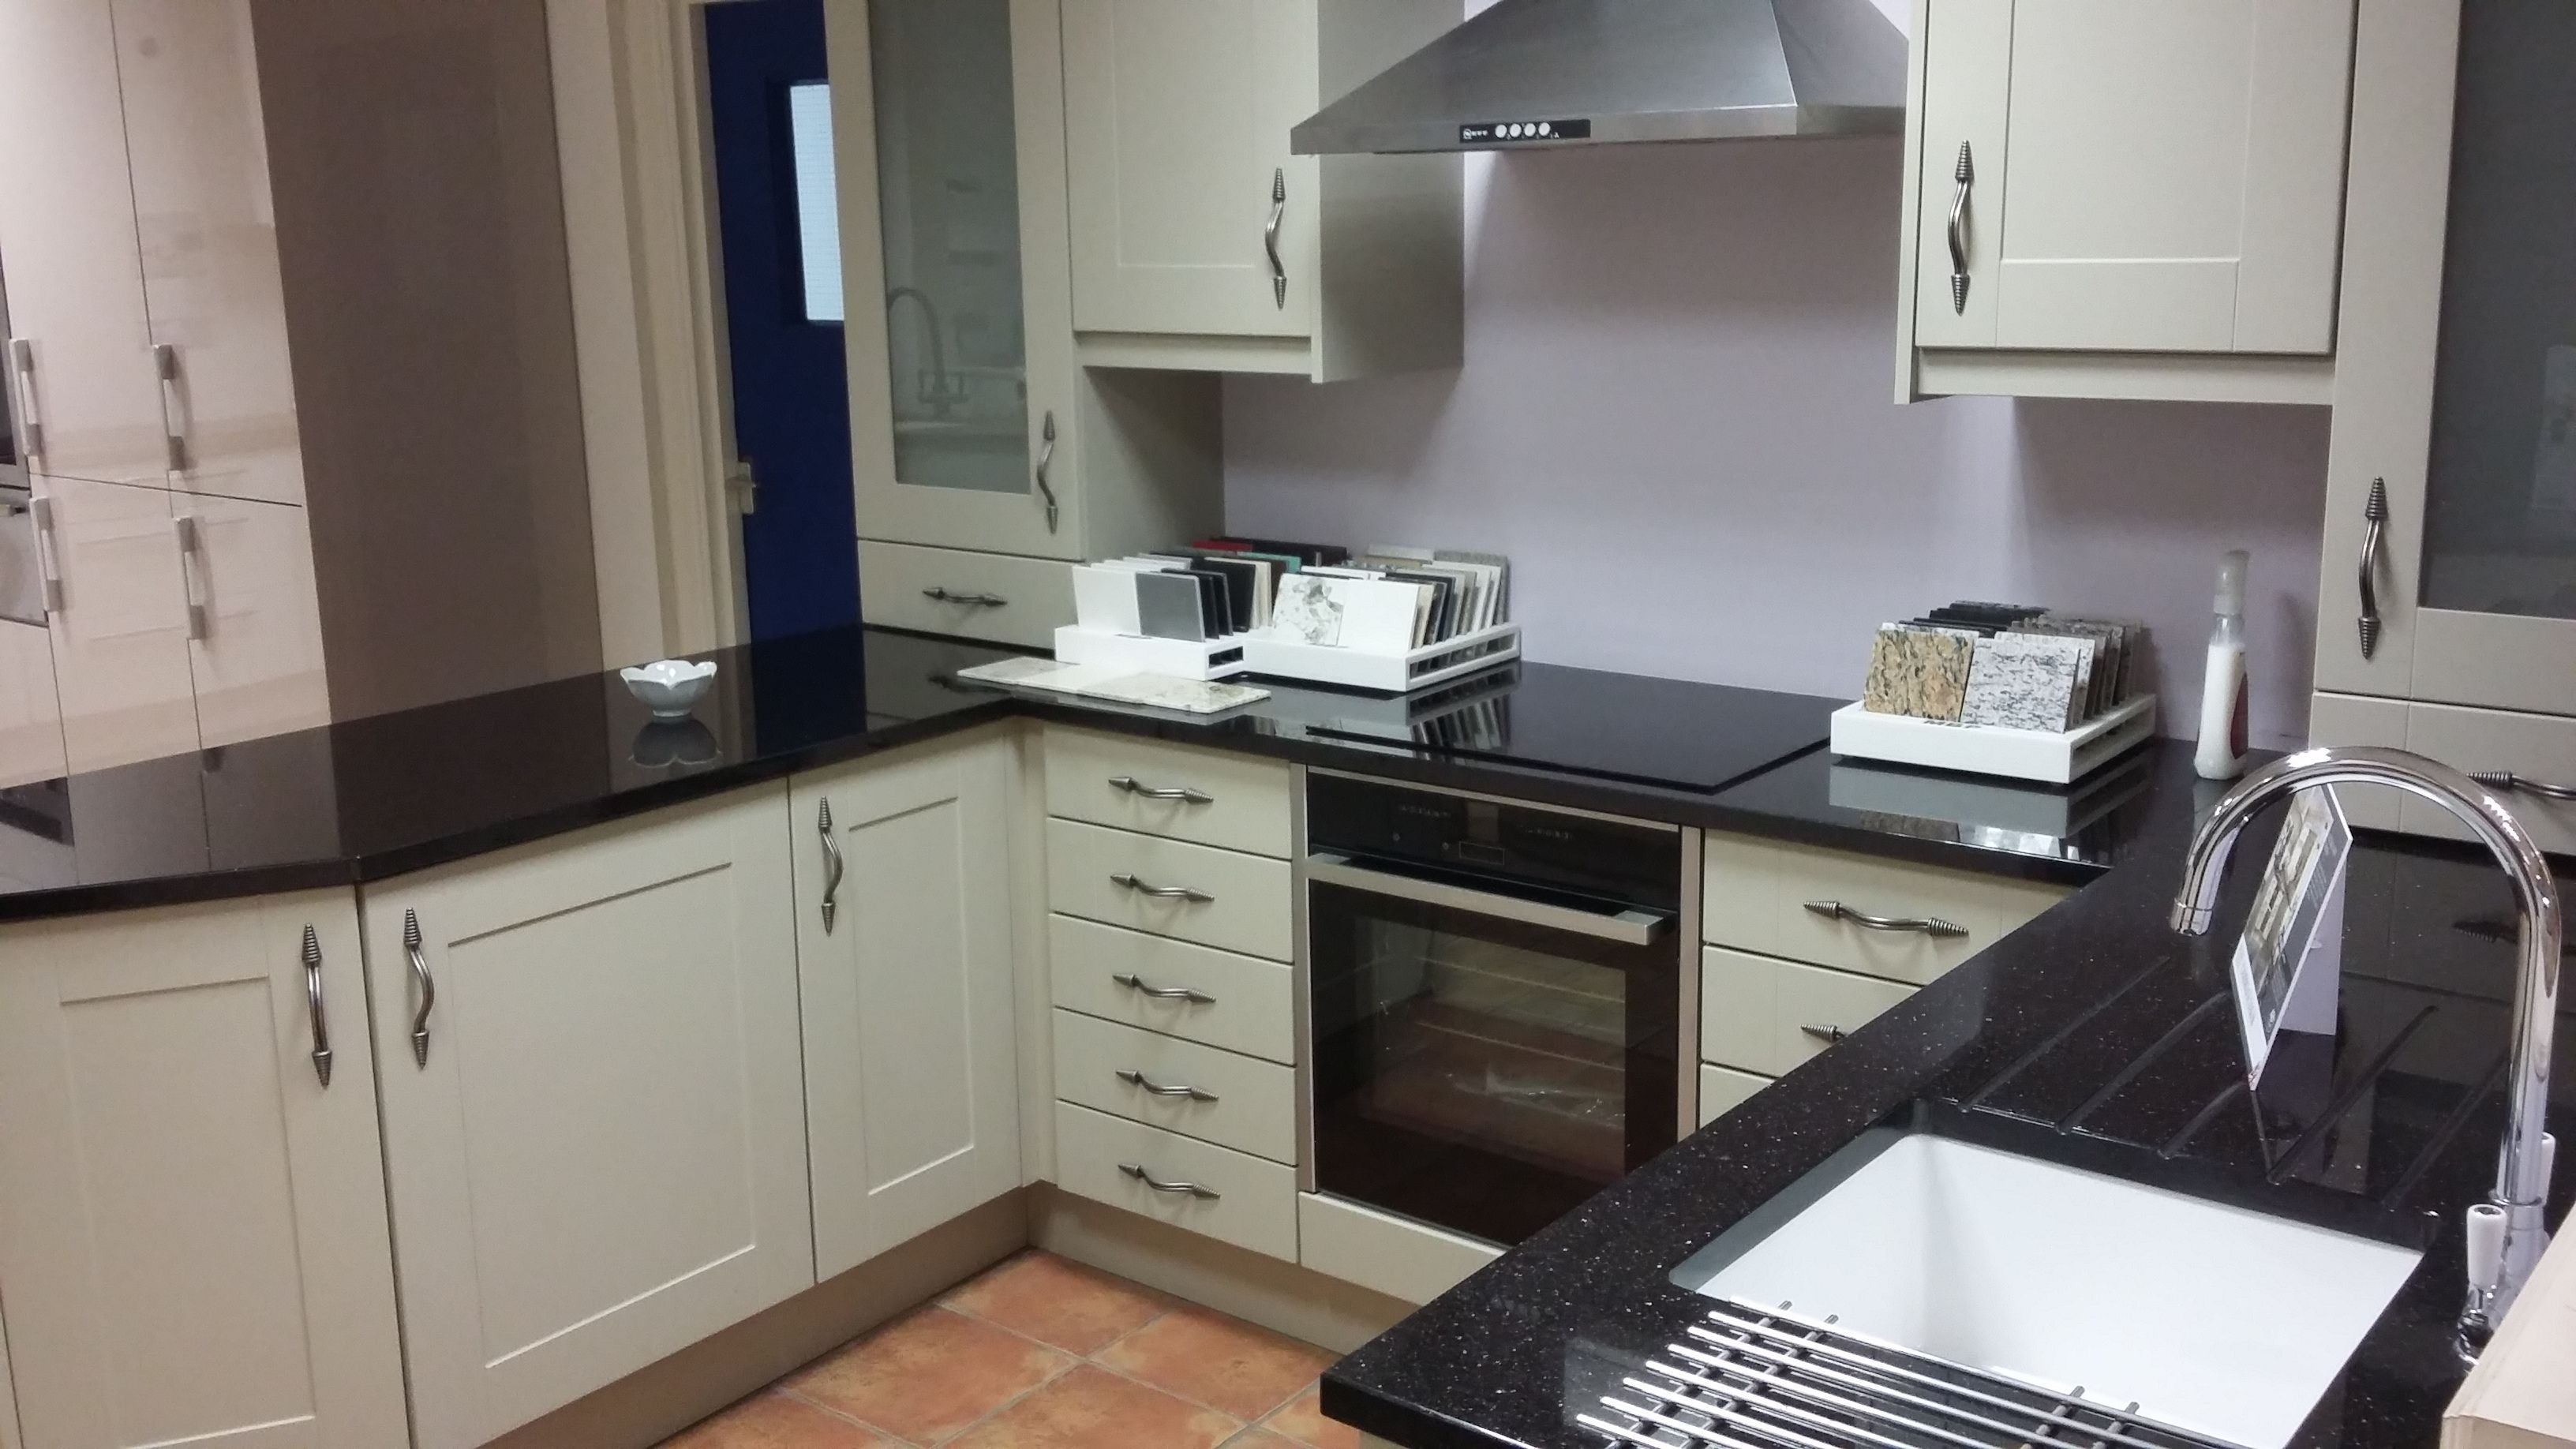 Granite Worktops For Kitchens Studio Cambridge Dakar Kitchen With Granite Worktops On Display In